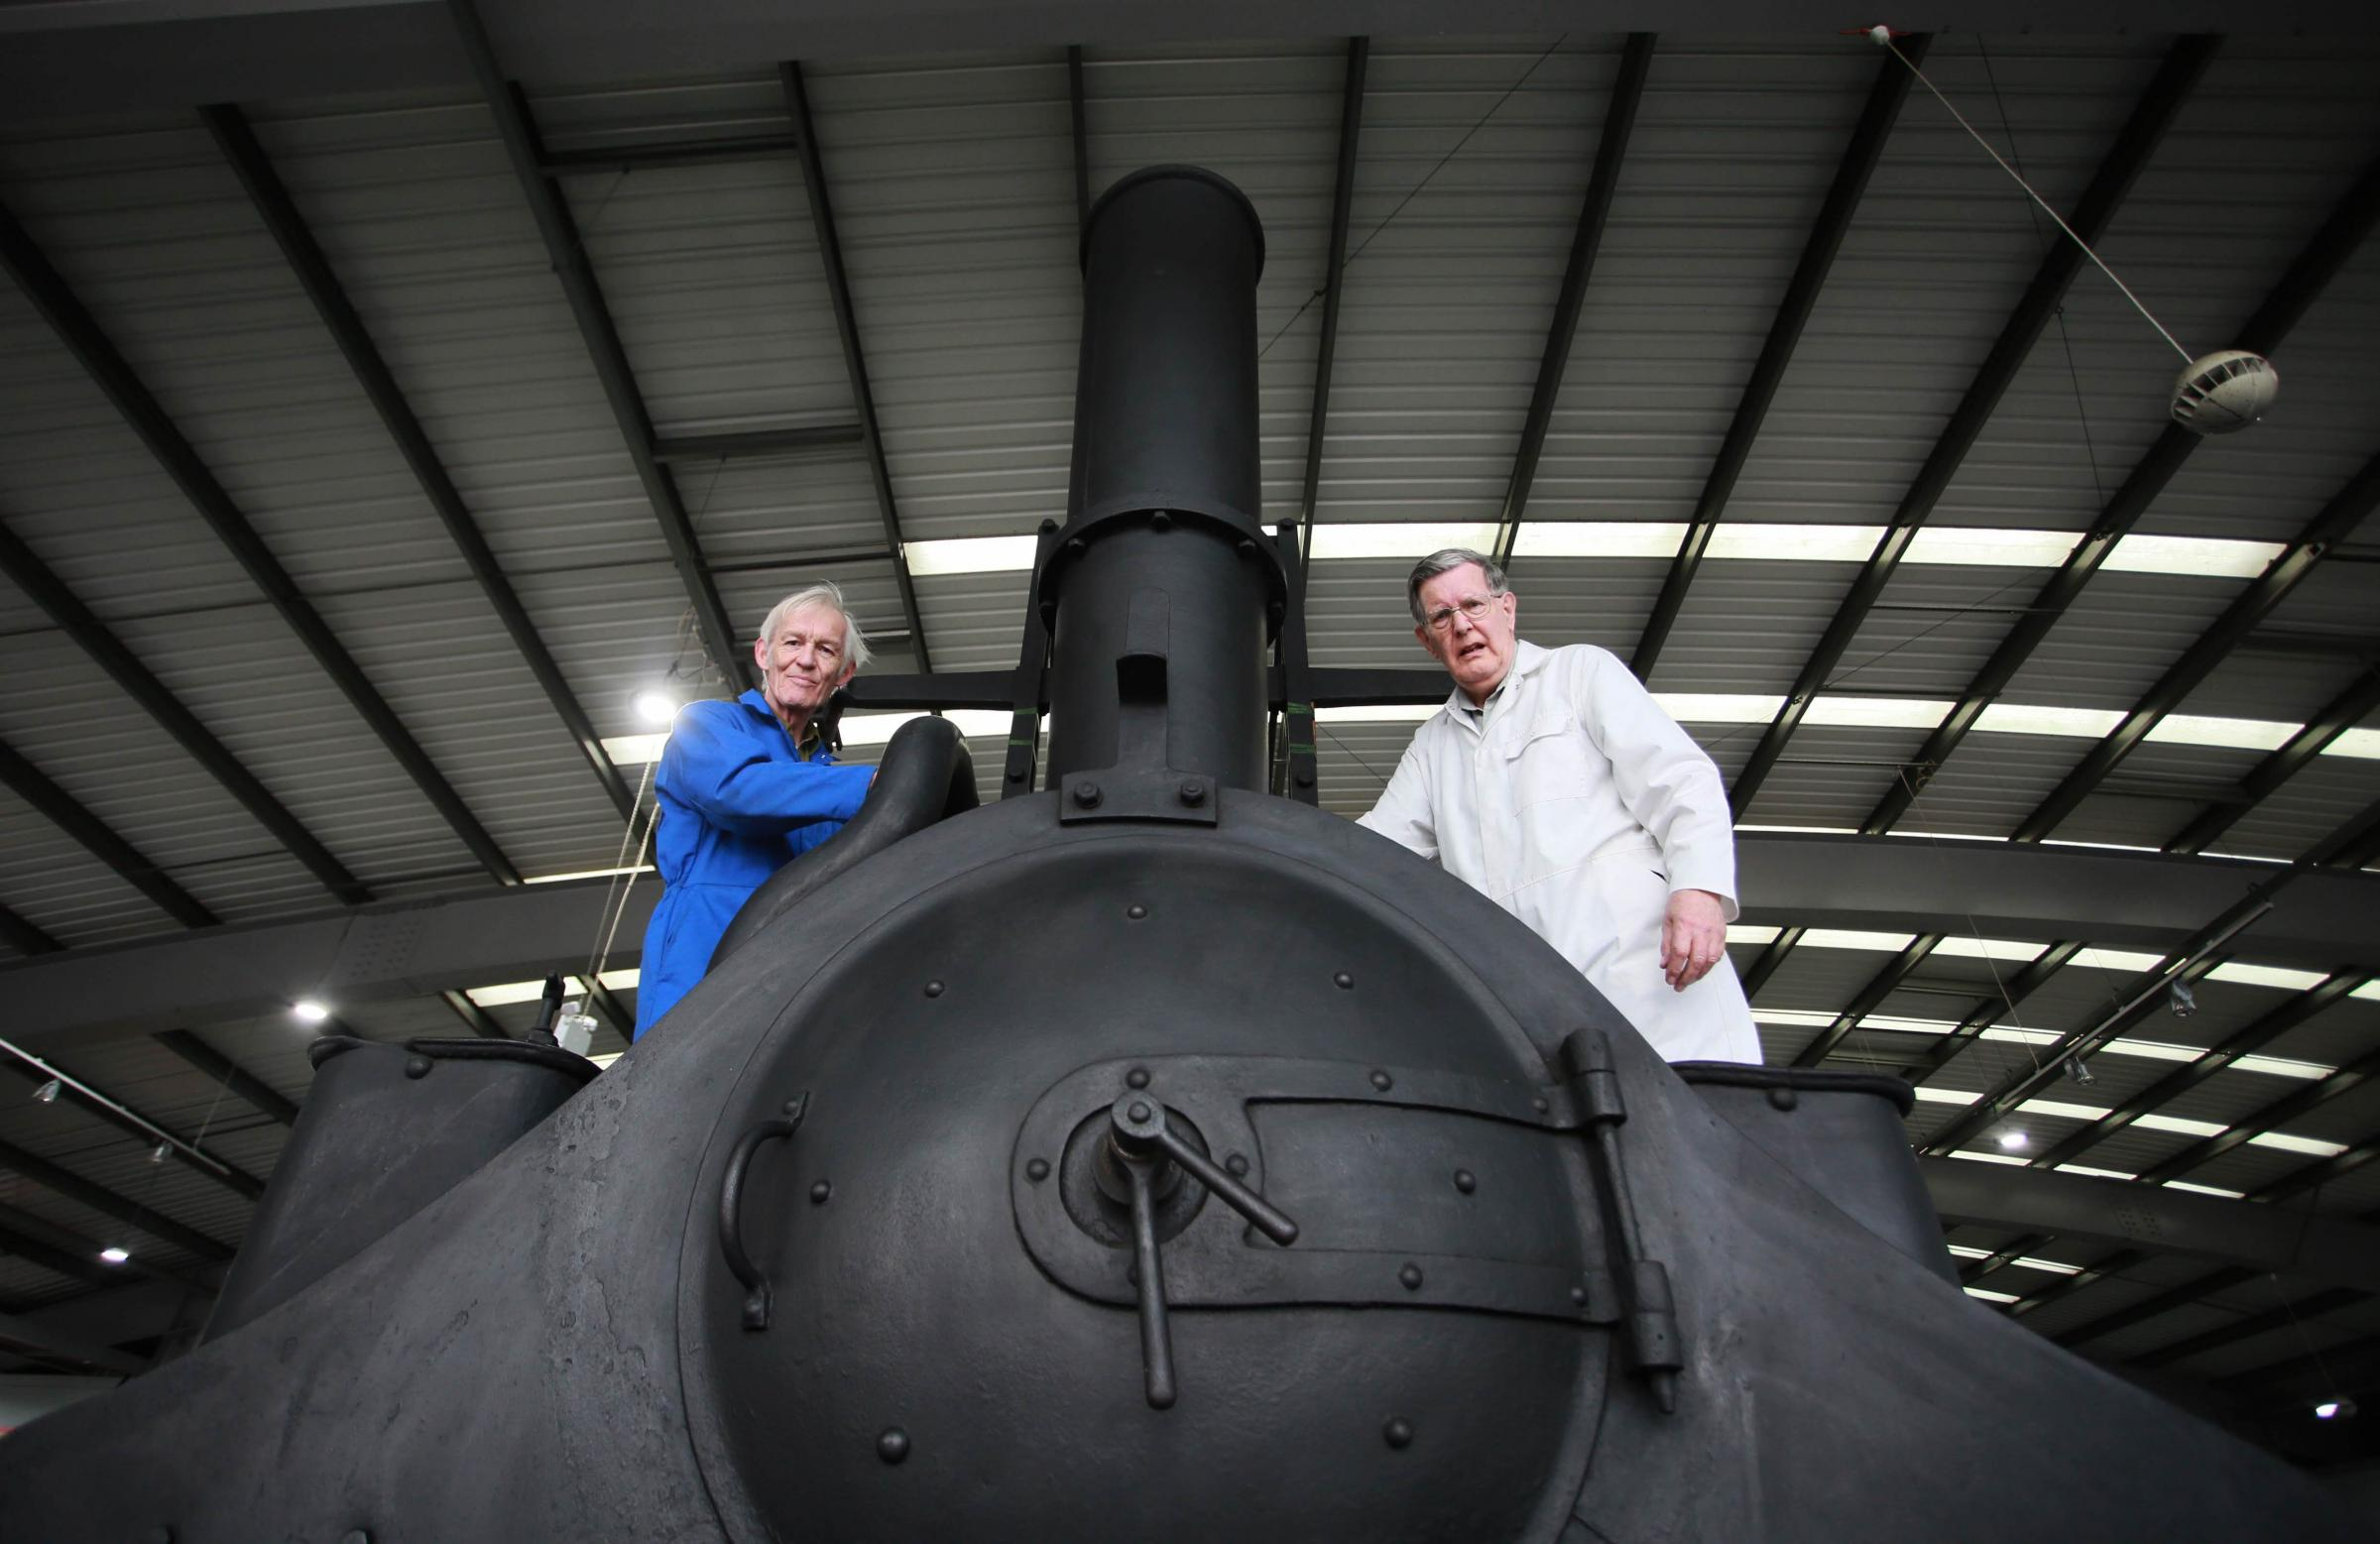 Mystery locomotive arrives at Locomotion in Shildon for investigation